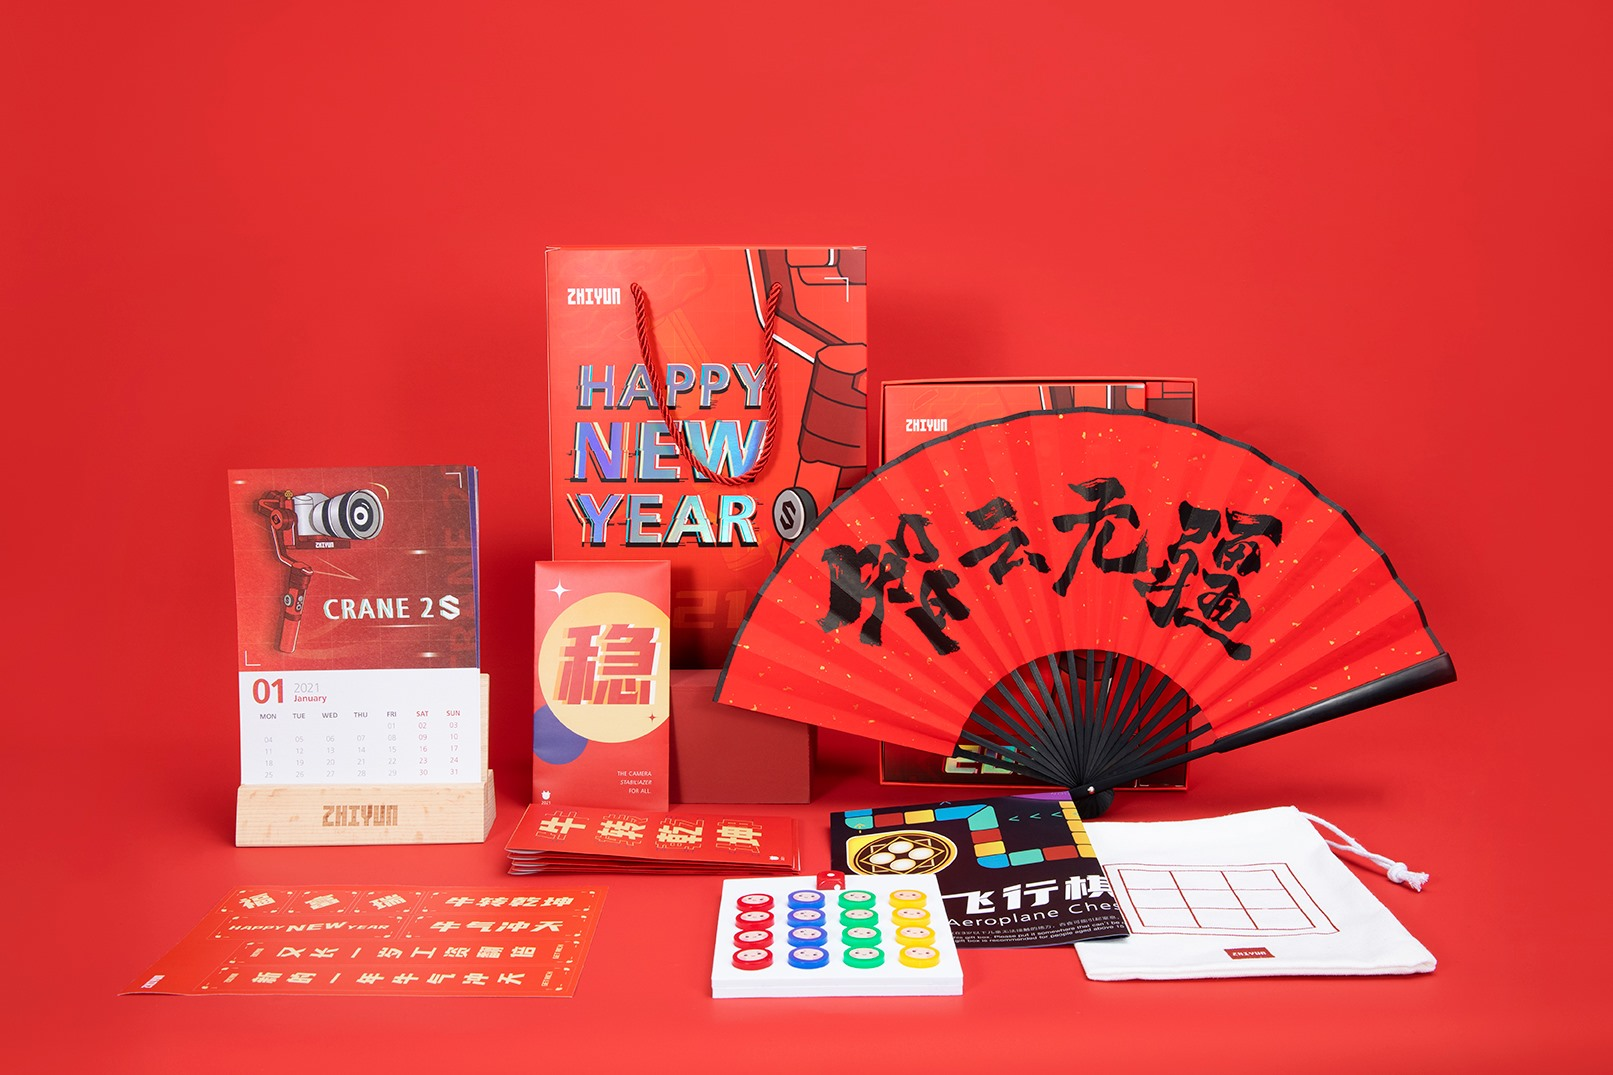 In order to celebrate Chinese New Year, we decided to give out our New Year's package! Leave a comment below, tell us 𝐖𝐇𝐄𝐑𝐄 𝐘𝐎𝐔 𝐀𝐑𝐄 𝐅𝐑𝐎𝐌